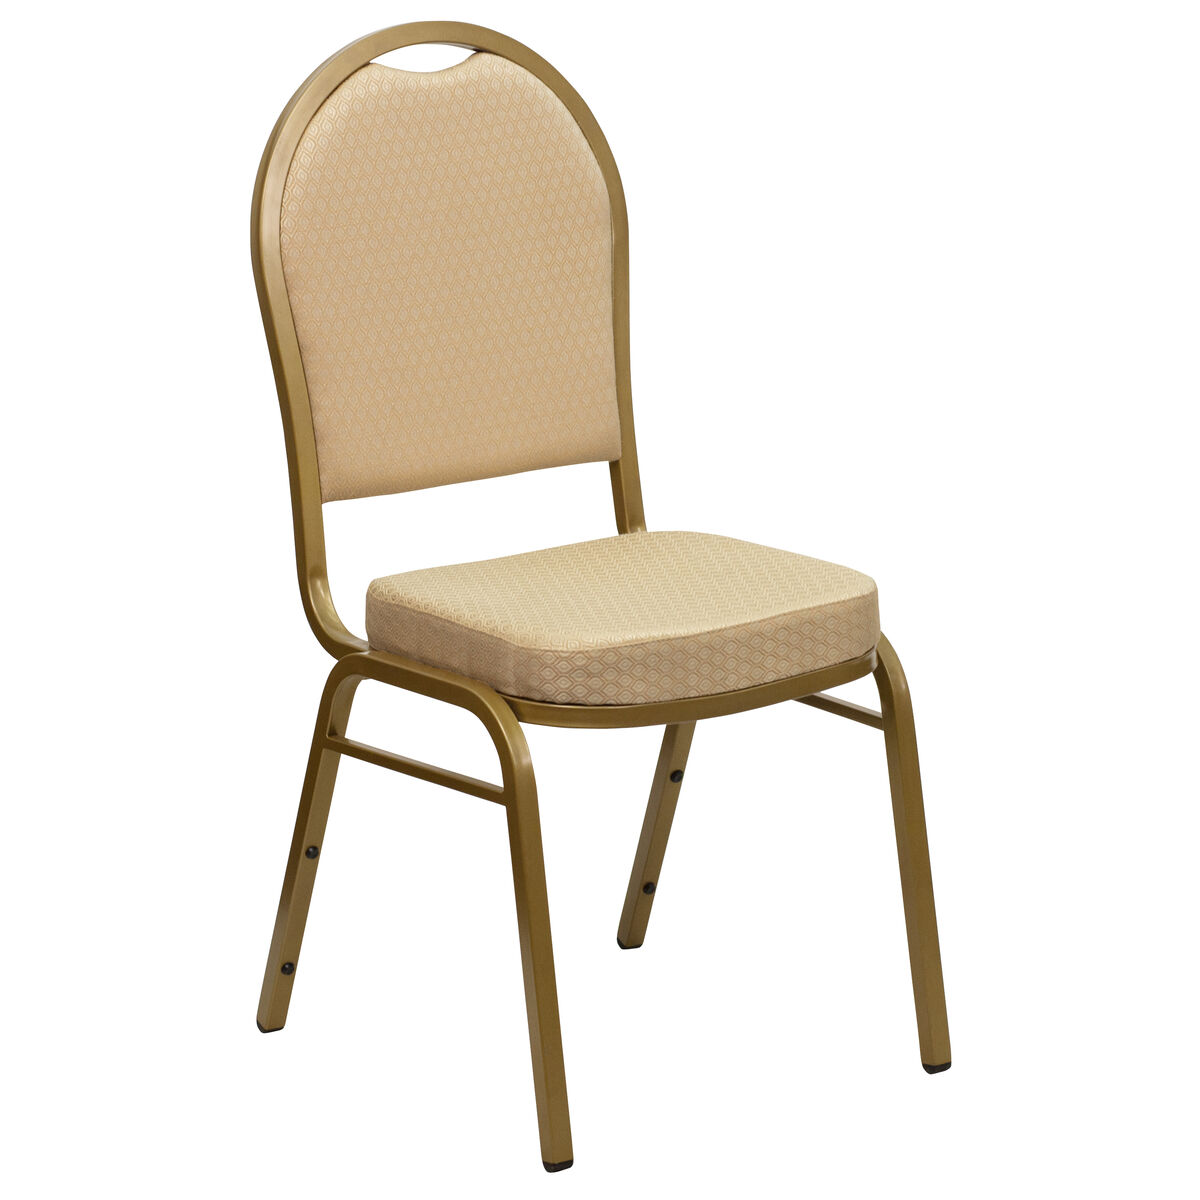 flash furniture hercules series dome back stacking banquet chair in beige patterned fabric. Black Bedroom Furniture Sets. Home Design Ideas